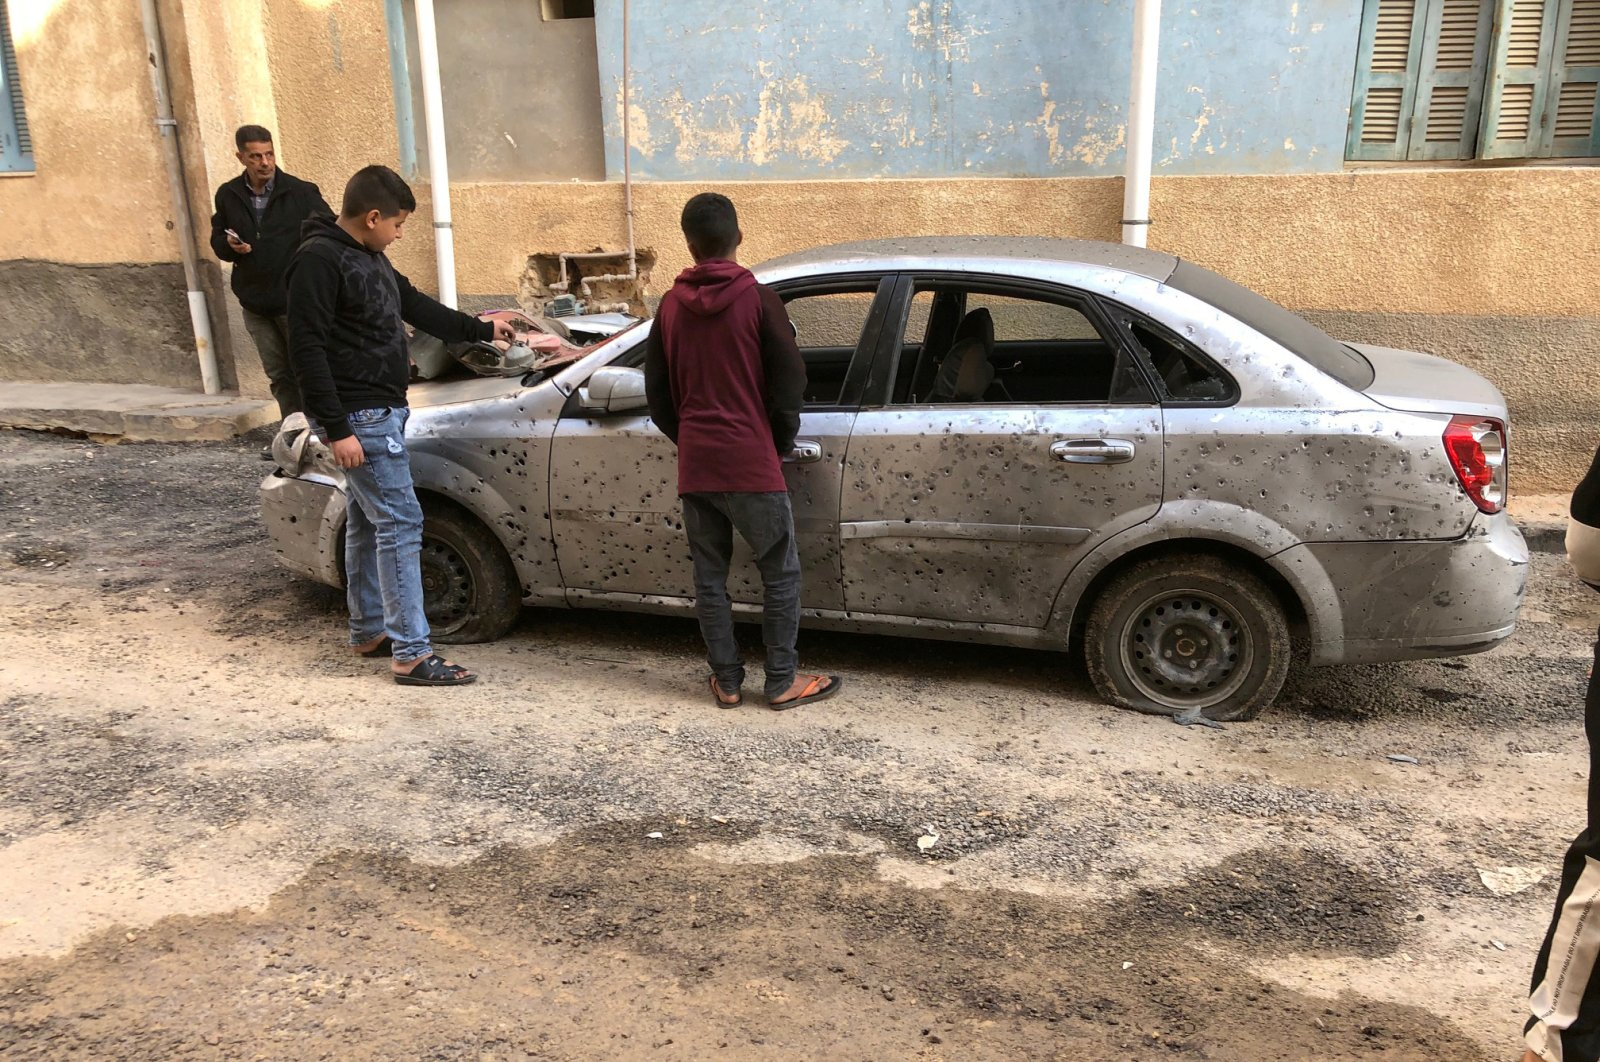 Libyan boys check a damaged car after a shell fell on a residential area at Hadba al-Badri district, in Tripoli, Libya Jan. 28, 2020. REUTERS